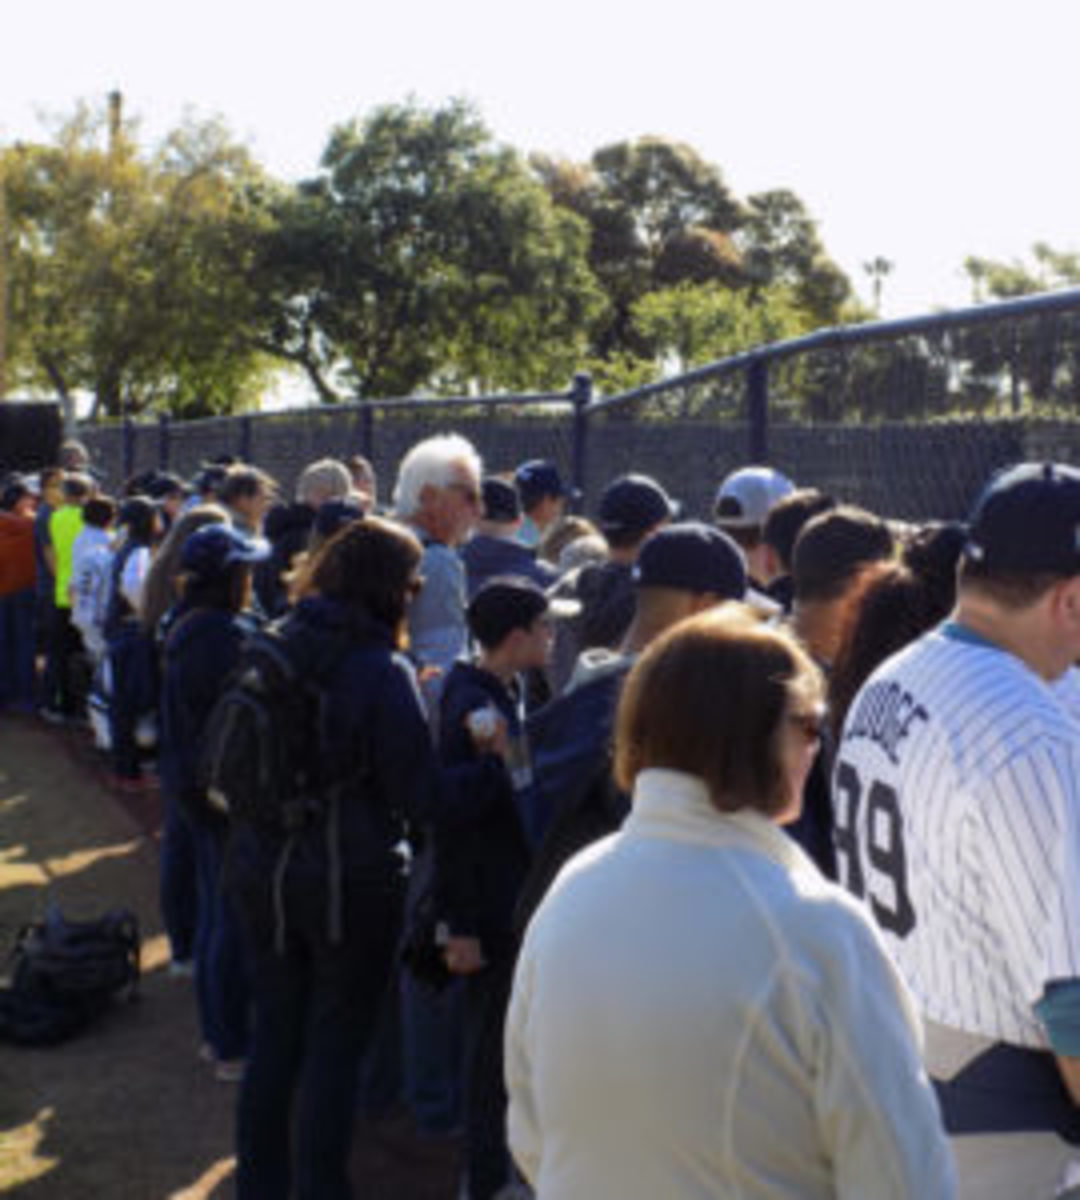 Fans and collectors wait for a New York Yankees workout to end for their chance to get autographs.